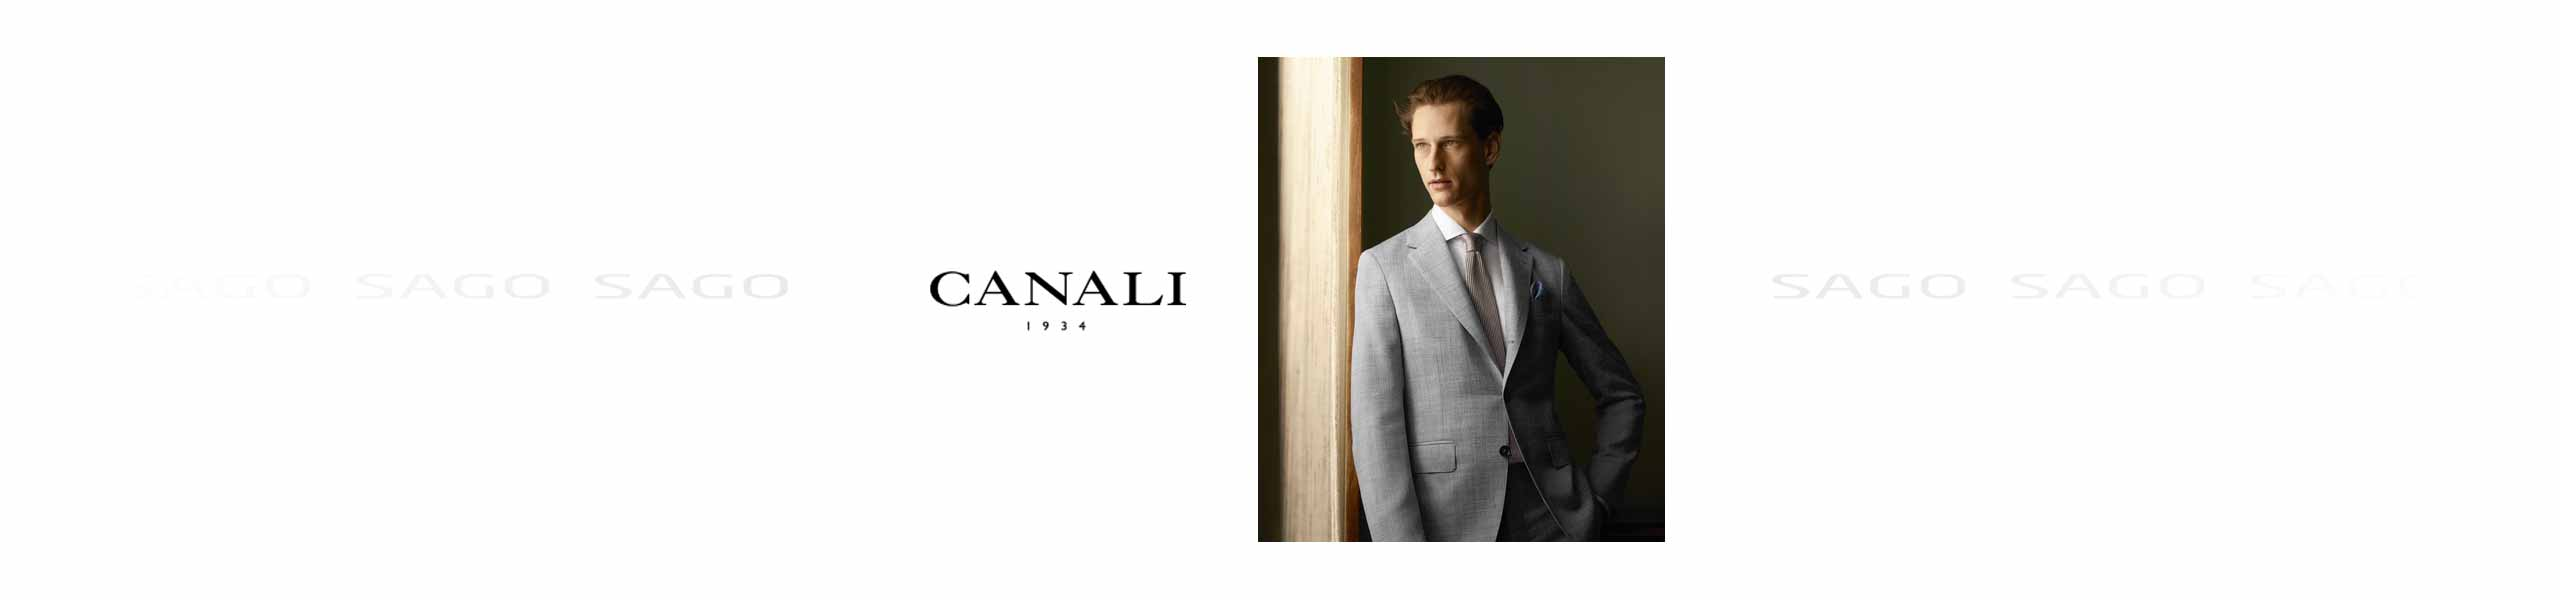 2019-canali-wide-01